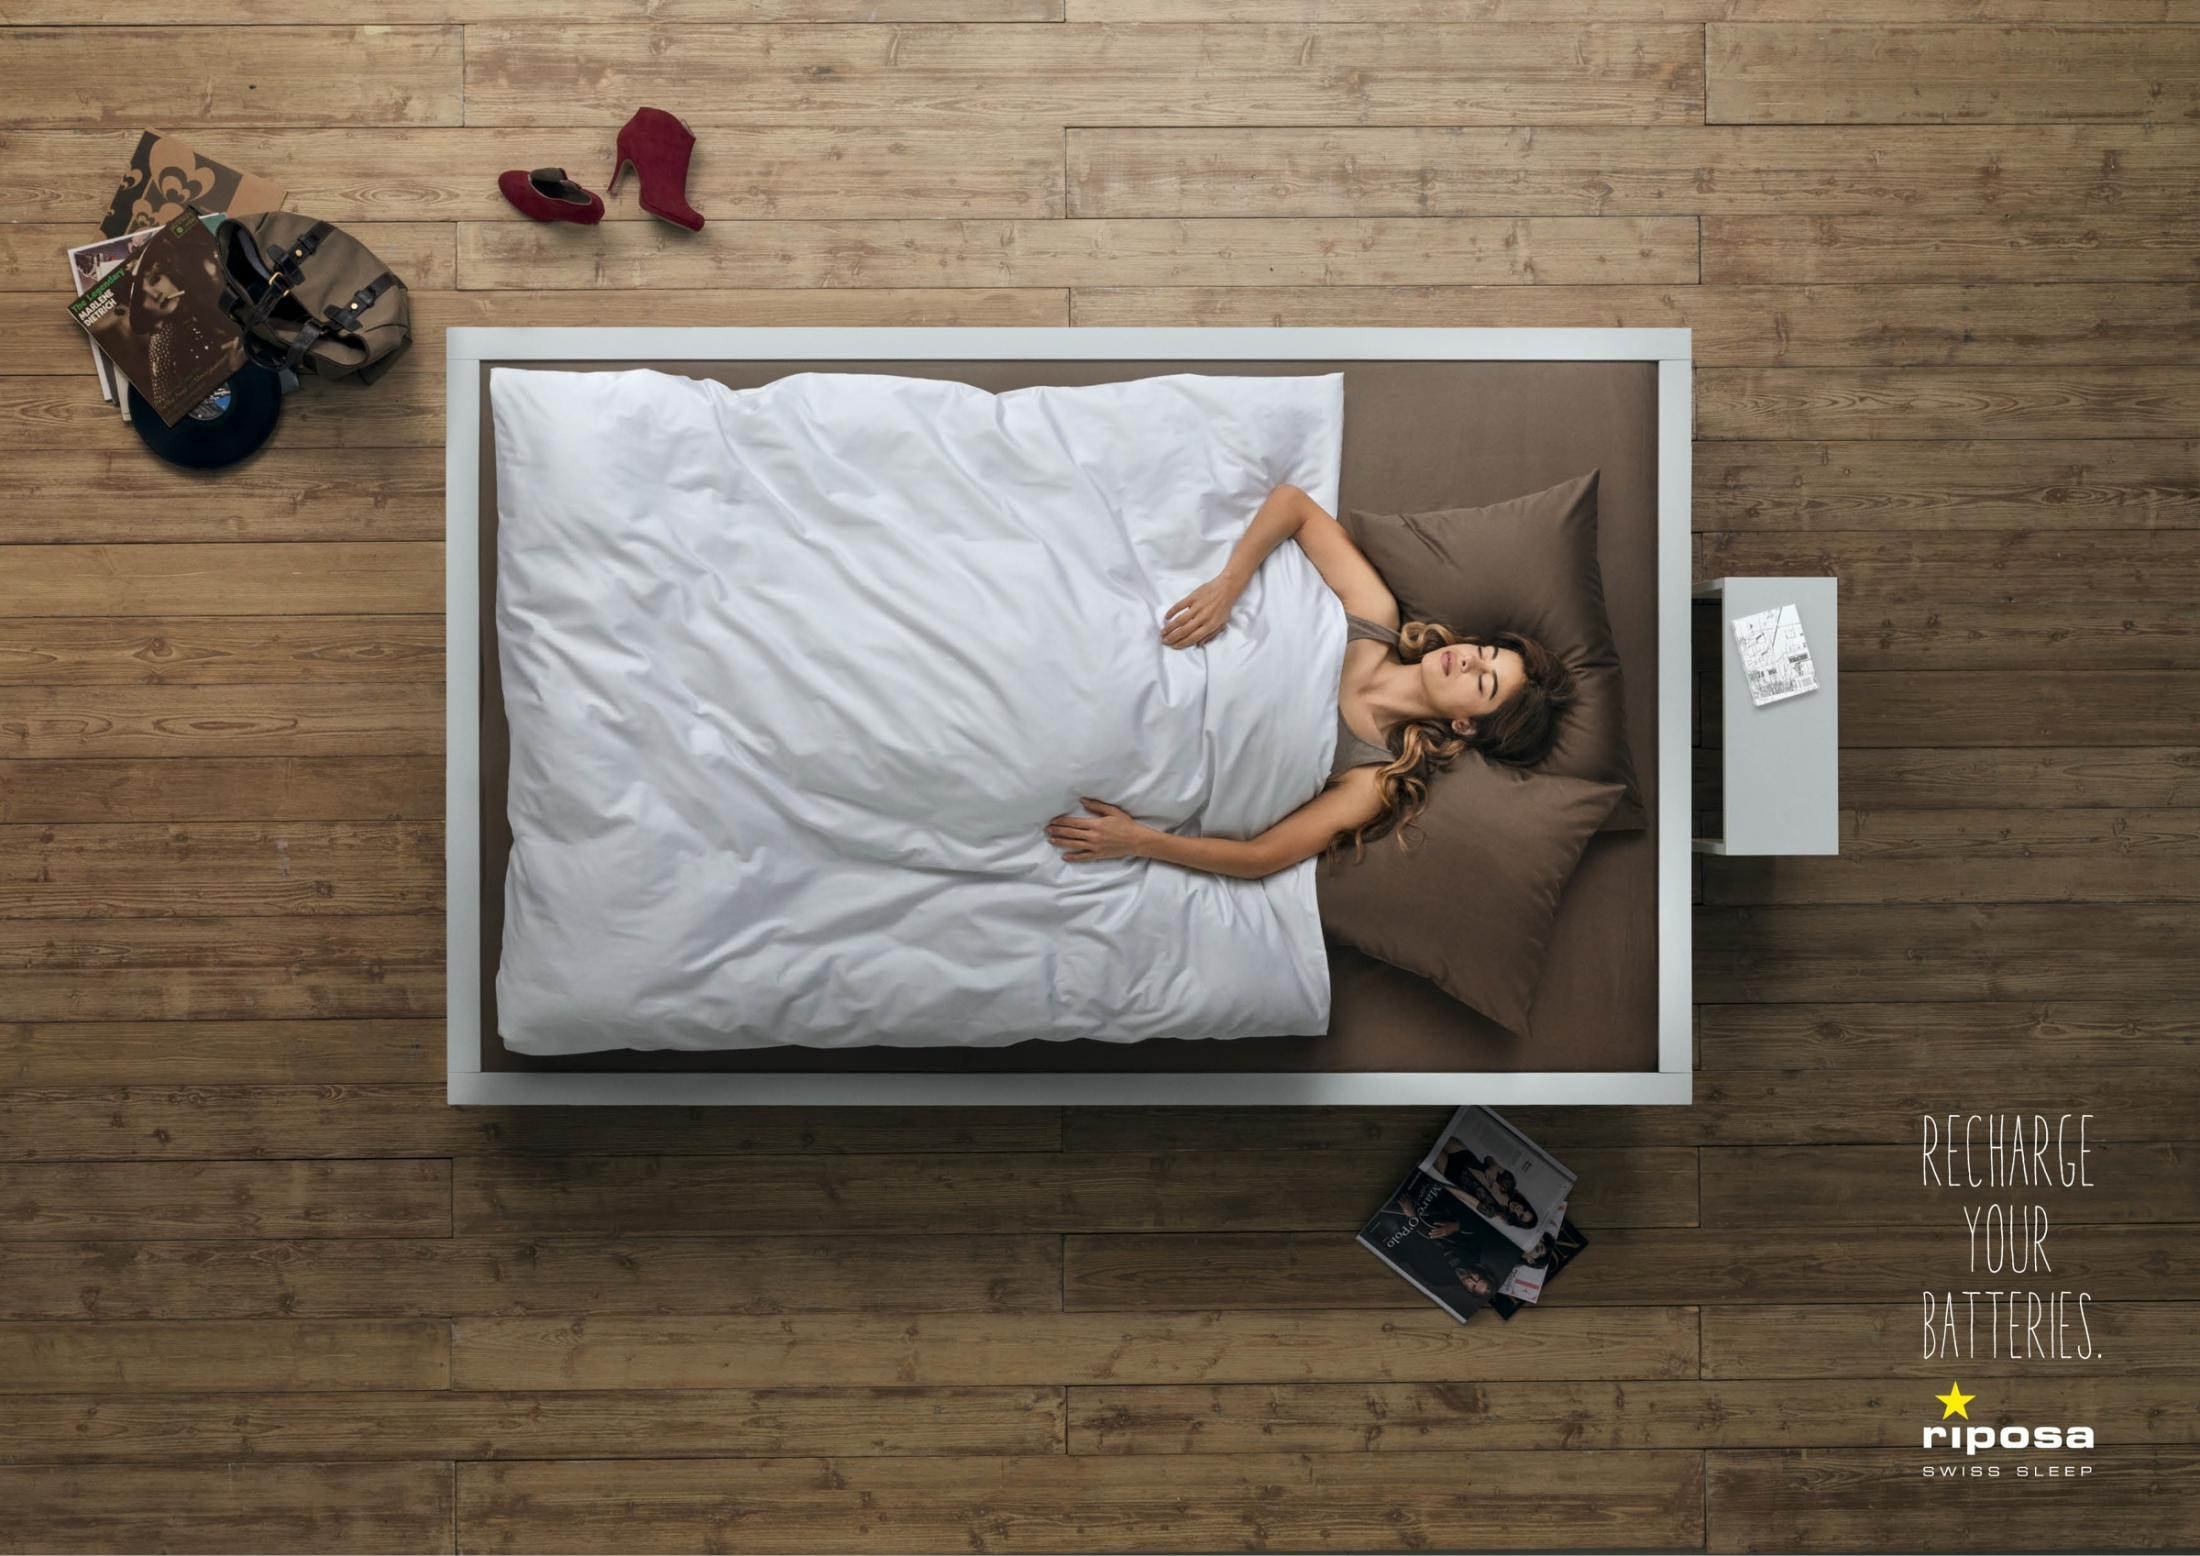 Riposa Print Ad -  Recharge your Batteries, Girl